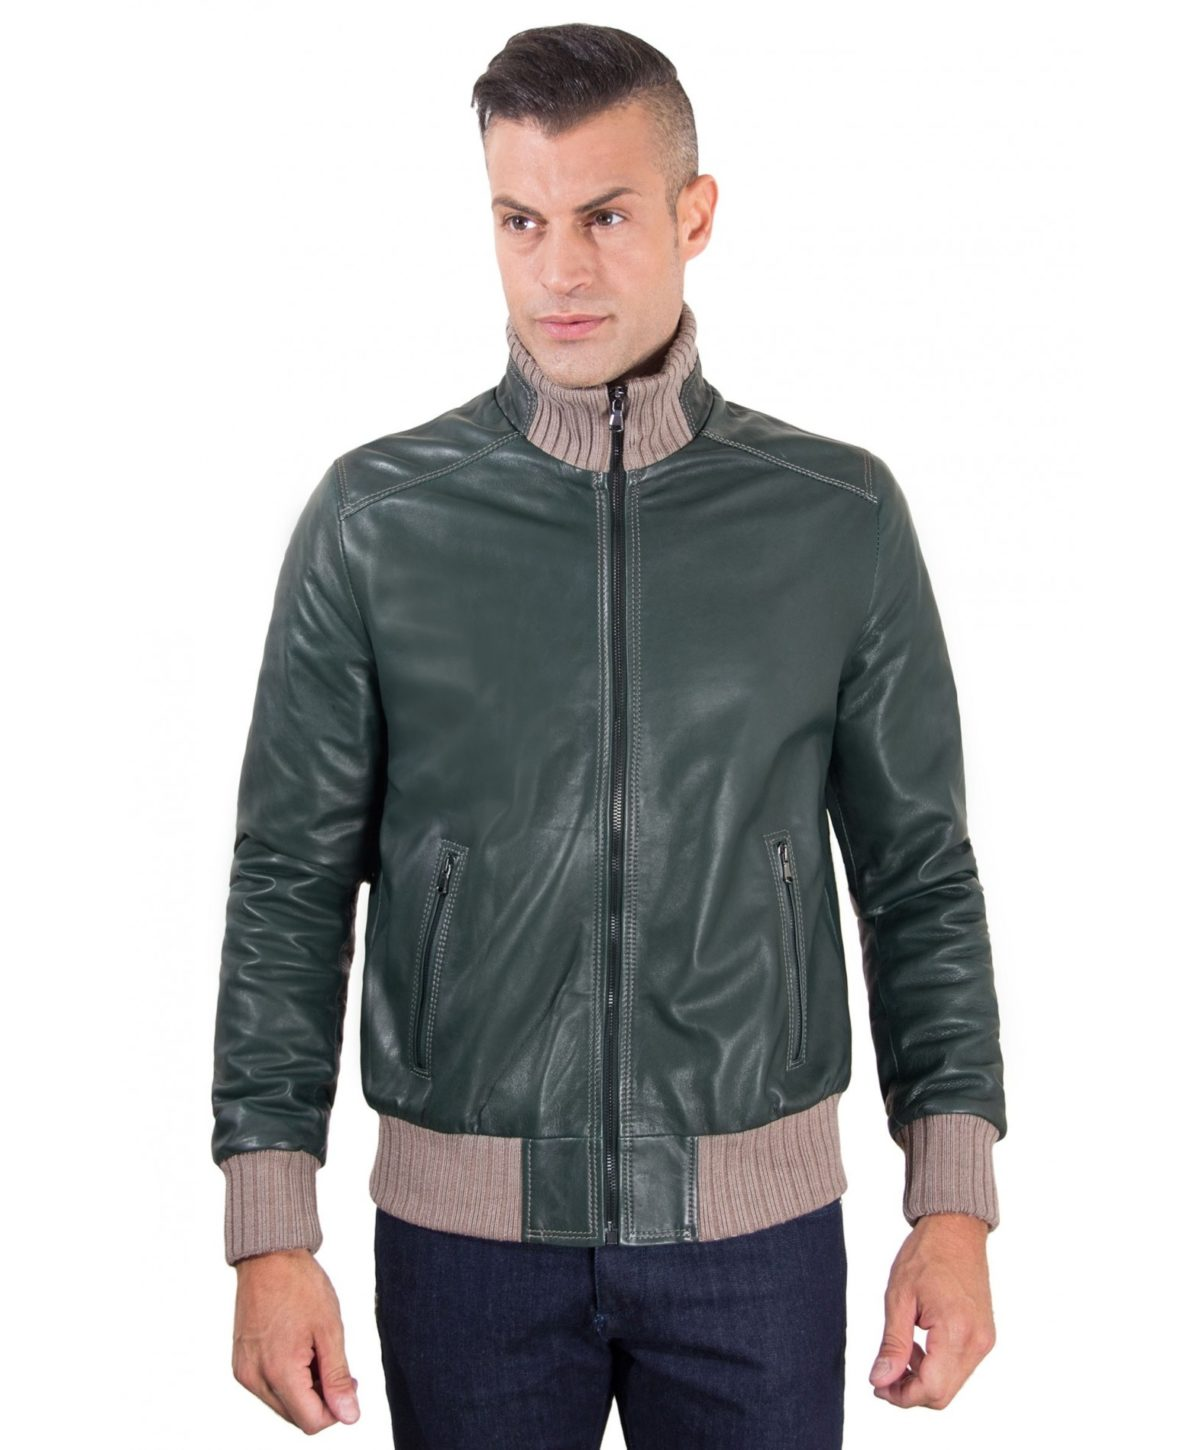 men-s-leather-jacket-contrasting-wool-style-bomber-green-color-bomber